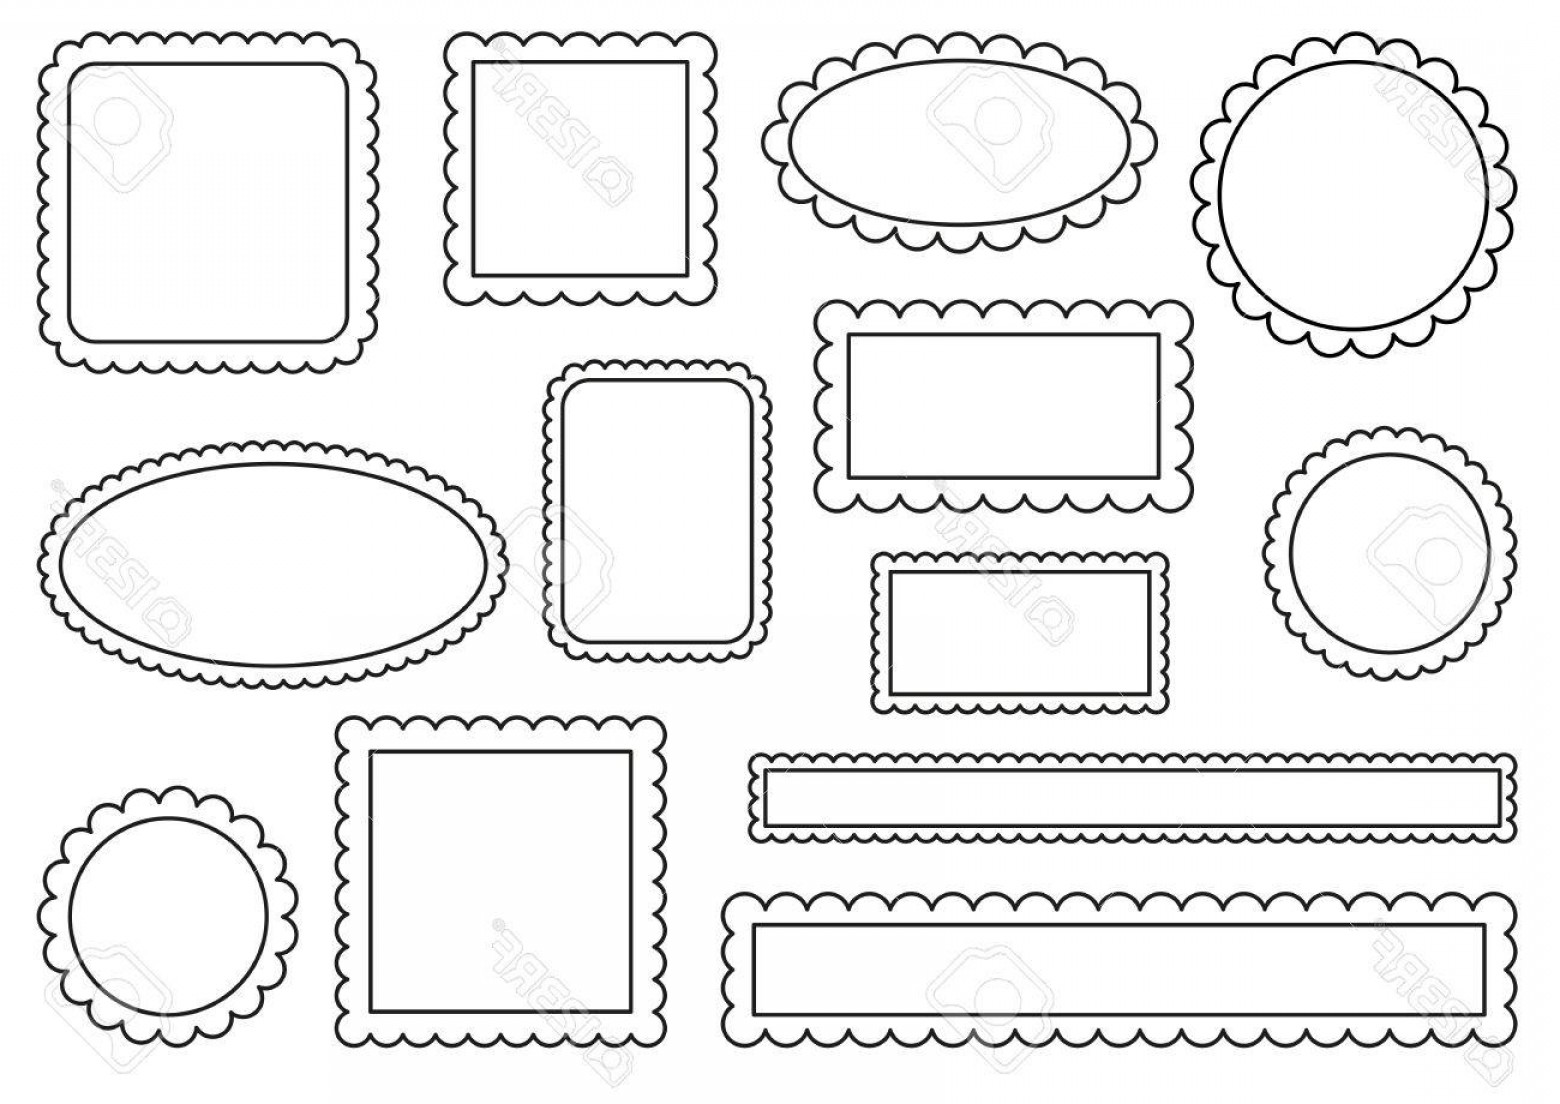 1560x1104 Photostock Vector Collection Of Scalloped Frames Shopatcloth